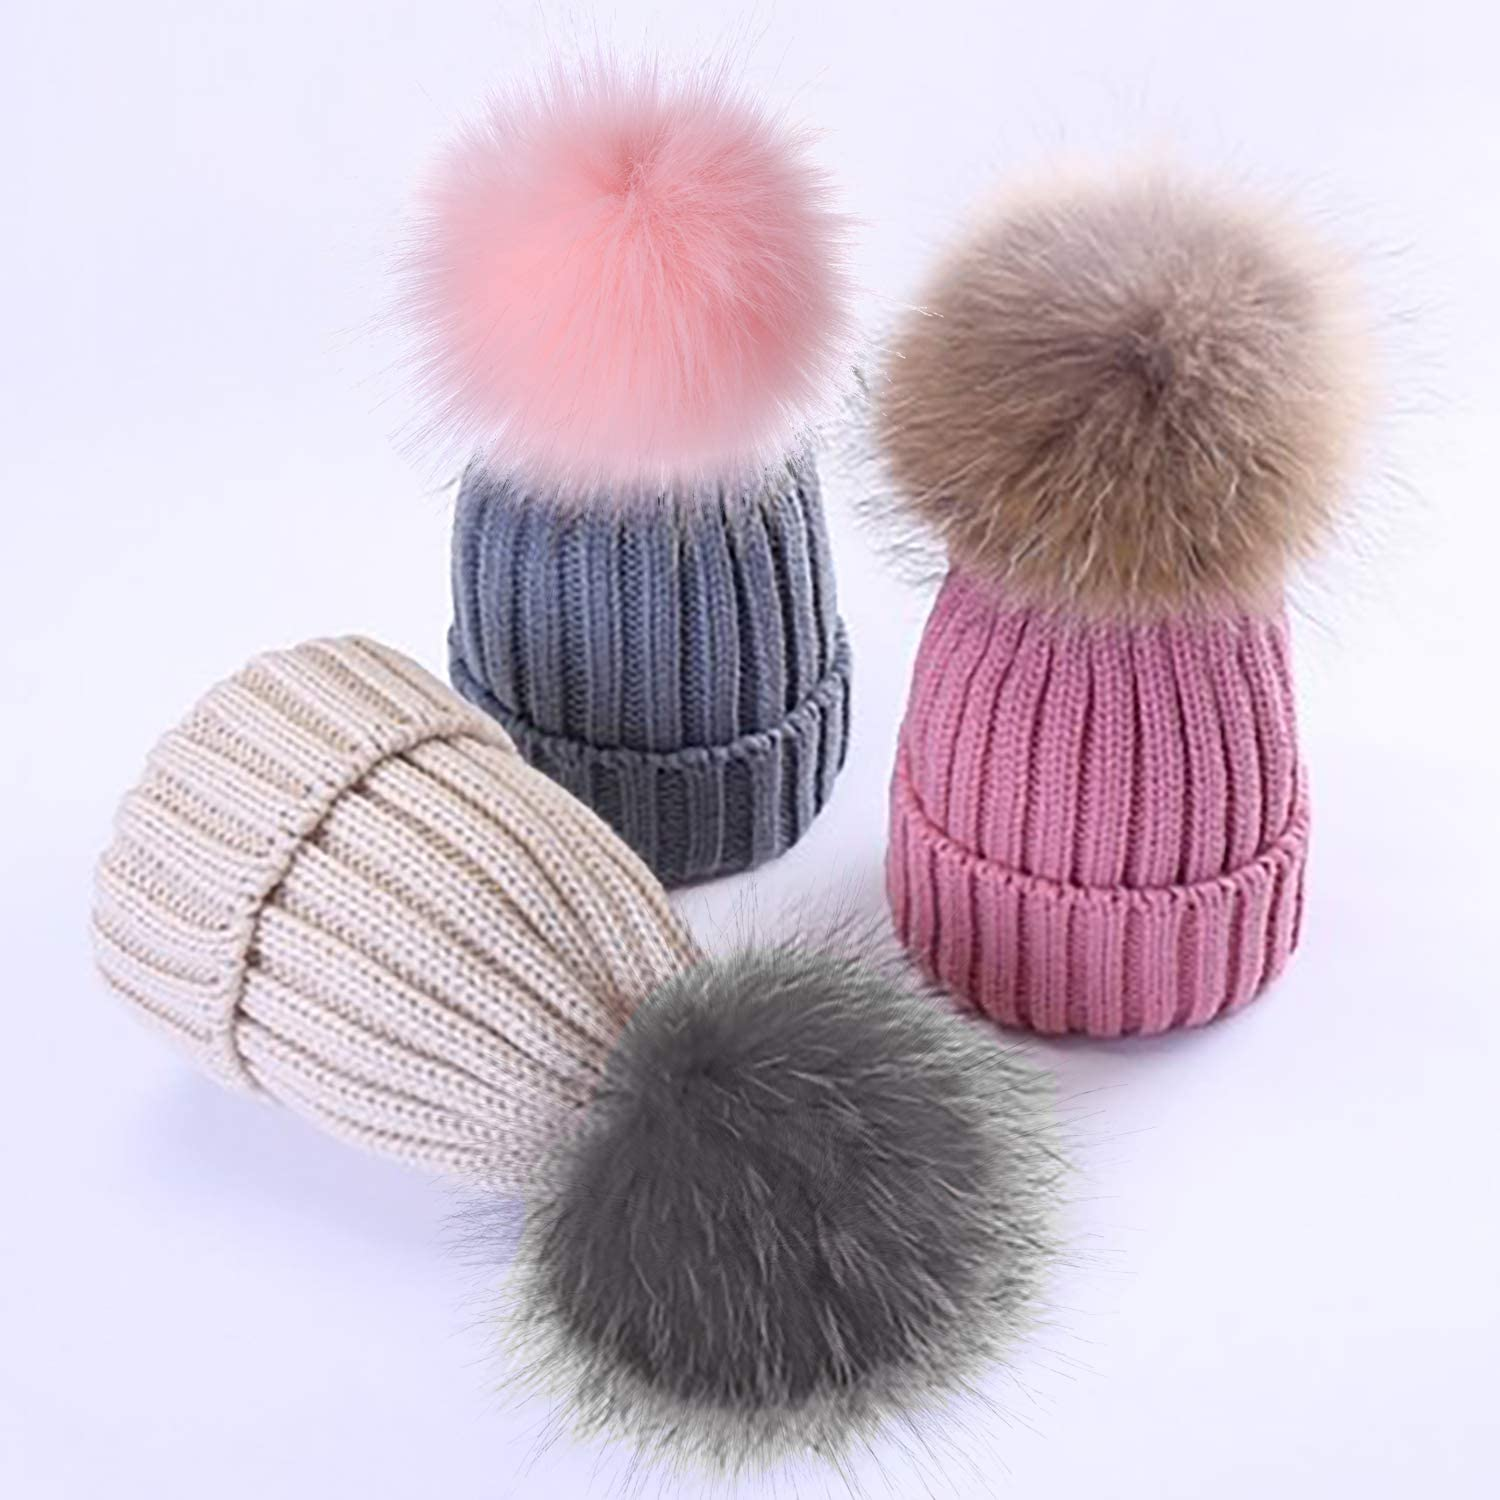 Coopay 16 Pieces Faux Fur Pom Pom Ball DIY Fur Pom Poms for Hats Shoes Scarves Bag Pompoms Keychain Charms Knitting Hat Accessories Popular Mix Colors